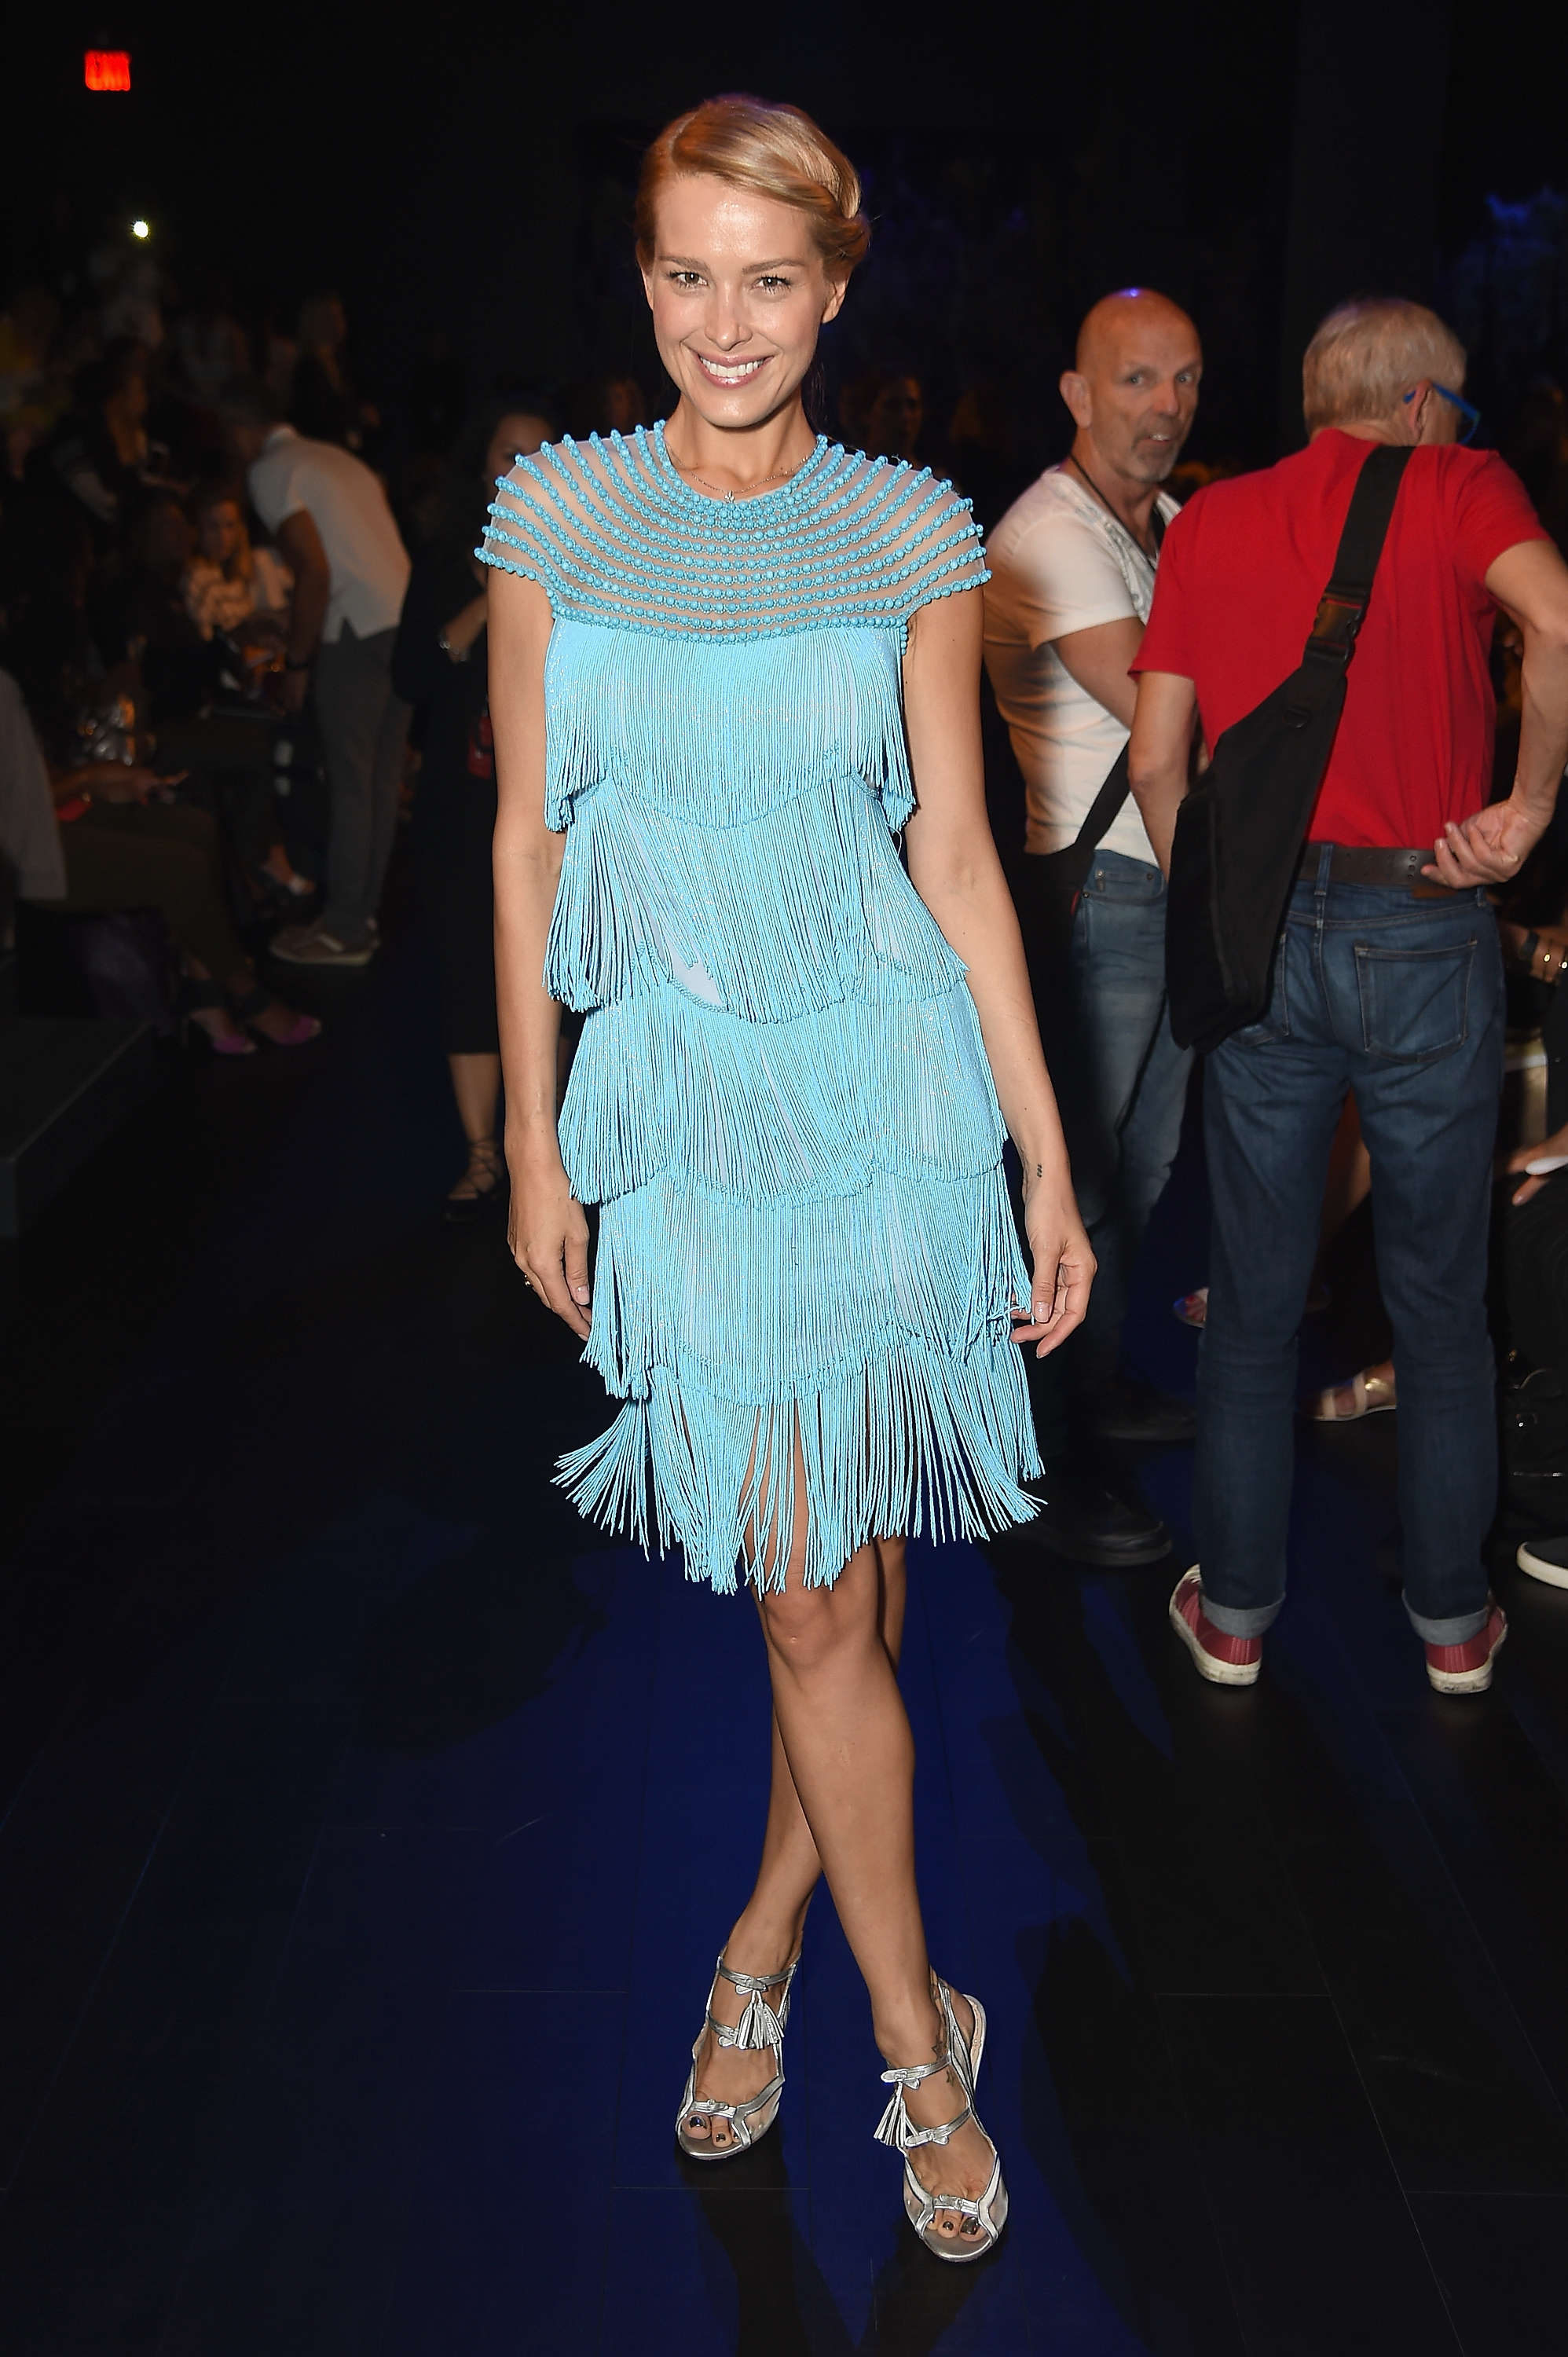 <p>It's a trend worth getting in a flap about with fringing take over the runway at New York Fashion Week.</p> <p>Swimsuit model and tsunami survivor Petra Nemcova showcased the fluid appeal of fringing in the front row of Naeem Khan's New York Fashion Week show, looking like a Malibu surfer 1920s flapper.</p> <p>Disney actress Peyton List had a more metallic approach tot he trend that looks set to take over from feathers as the embellishment you want on your next evening out.</p> <p>Naeem Khan made sure that there was plenty of fringing on the runway with his bride offering more shimmy and shake than your local car wash.</p> <p>Khan doesn't have a monopoly on fringe with Alexander Wand, Anna Sui, Calvin Klein and Monse all demonstrating the versatility of stripping on rather than stripping off.</p>